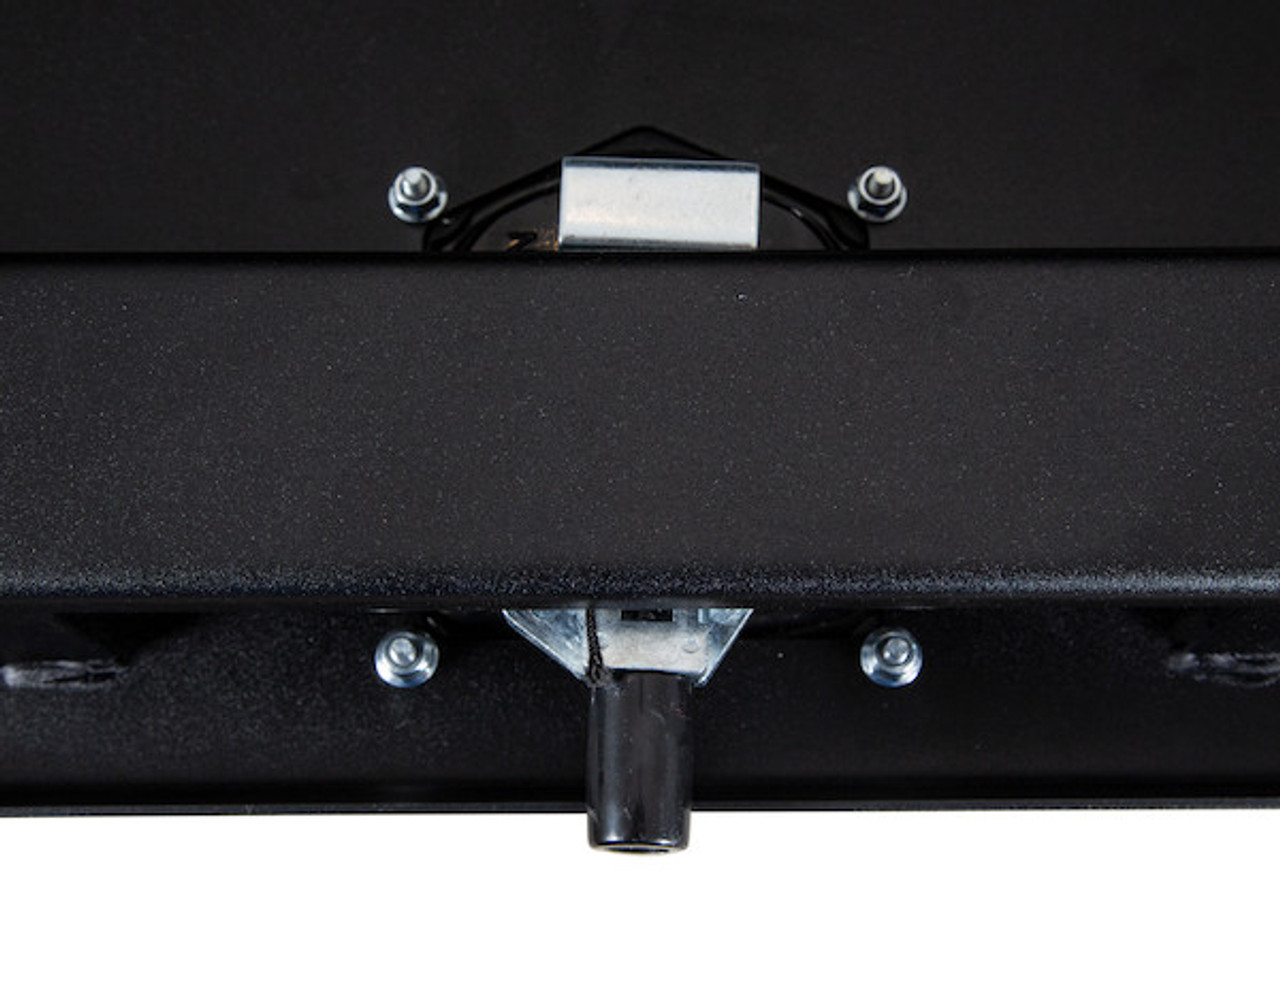 """1732505 BUYERS PRODUCTS TEXTURED MATTE BLACK STEEL UNDERBODY TRUCK TOOLBOX WITH 3-POINT LATCH 18""""Hx18""""Dx36""""W  Picture # 7"""